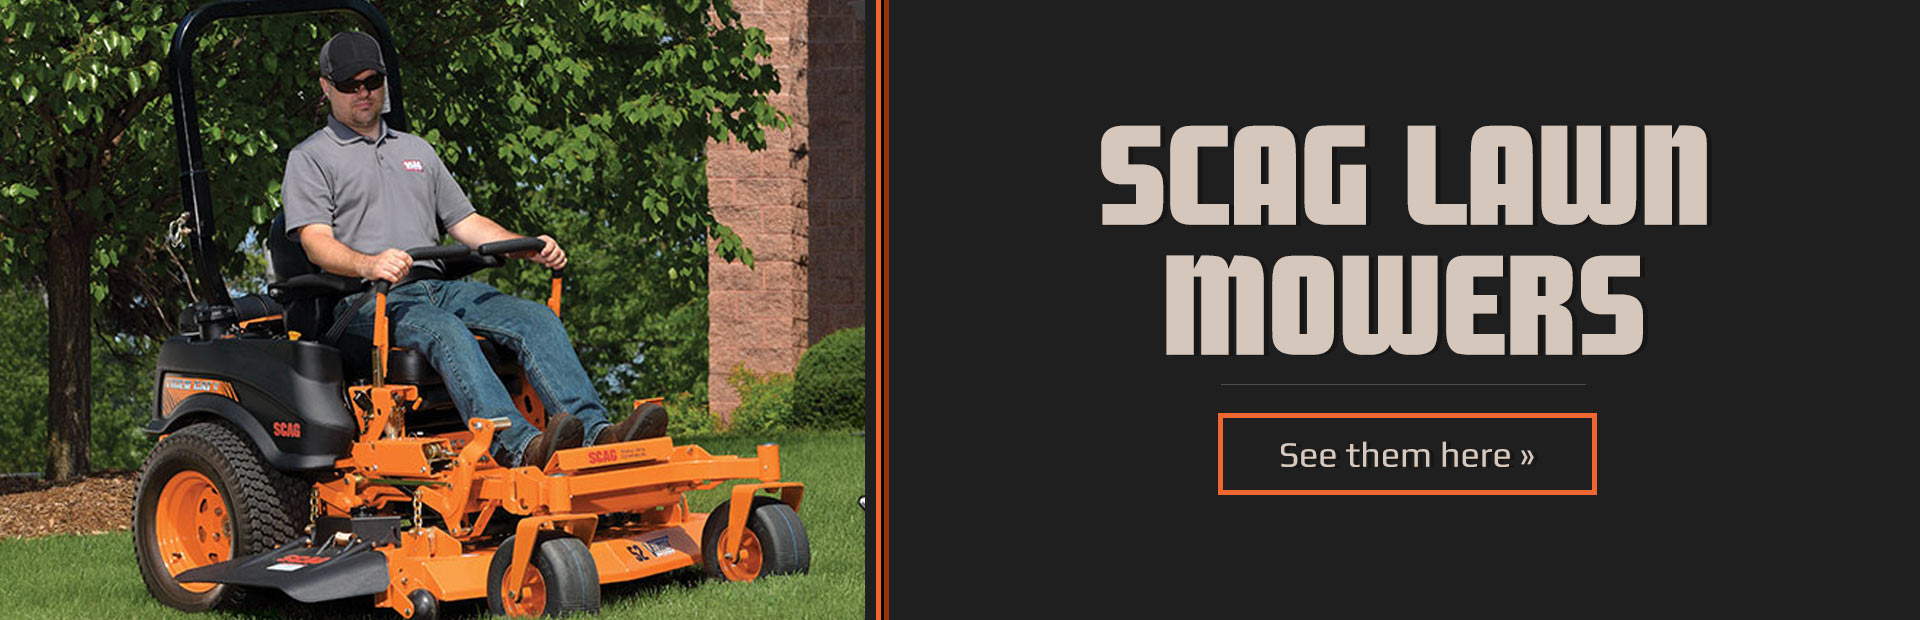 Scag Lawn Mowers: Click here to see the models.